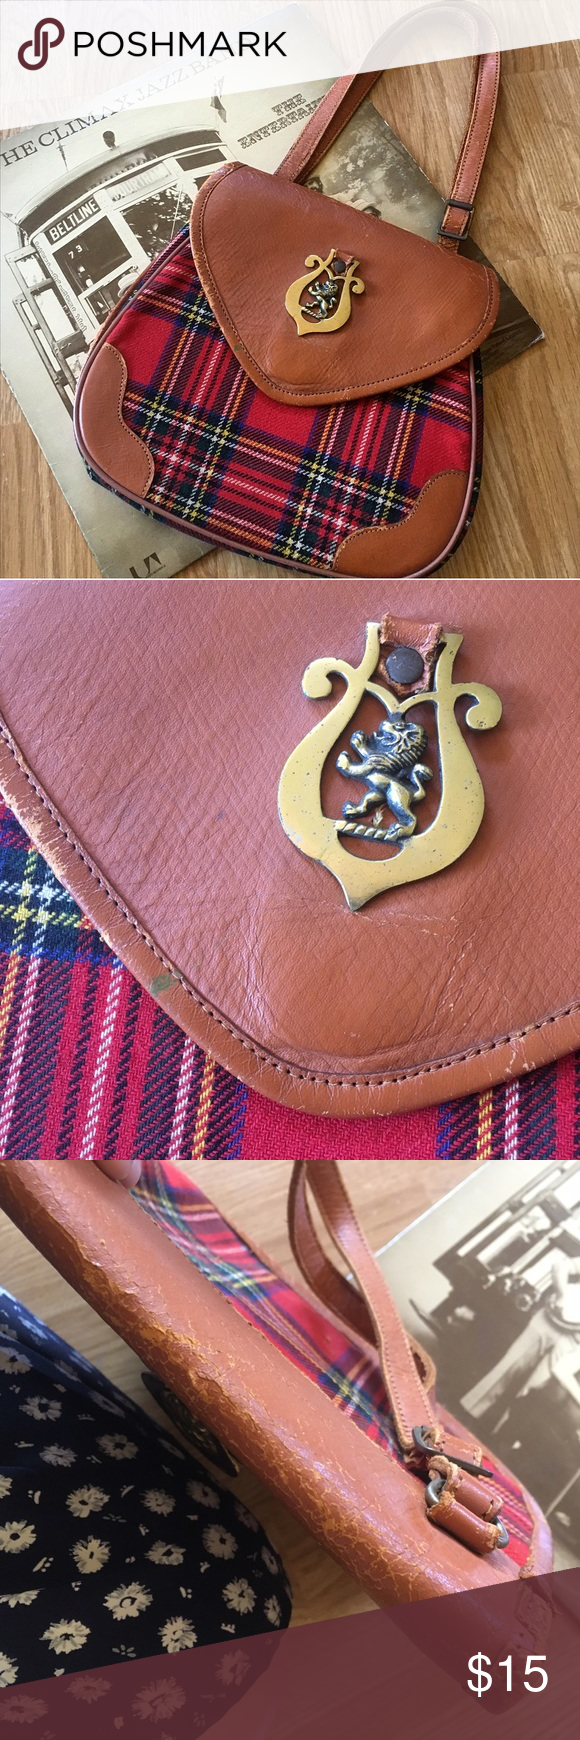 🦁Vintage Plaid Lion Purse🦁 Sweet vintage purse with lots of character! Plaid, hard structured body with leather details and straps. Has a cool brass lion detail. Snaps shut and has two large sections on the inside. Has some visible wear (cracking at leather hinges, small green mark on front leather) all pictured. Still totally functional though! Could probably be restored with some leather polish and TLC. ((NOT MODCLOTH marked for exposure)) (( TAGS: retro, rockabilly, preppy, 60s, 70s…